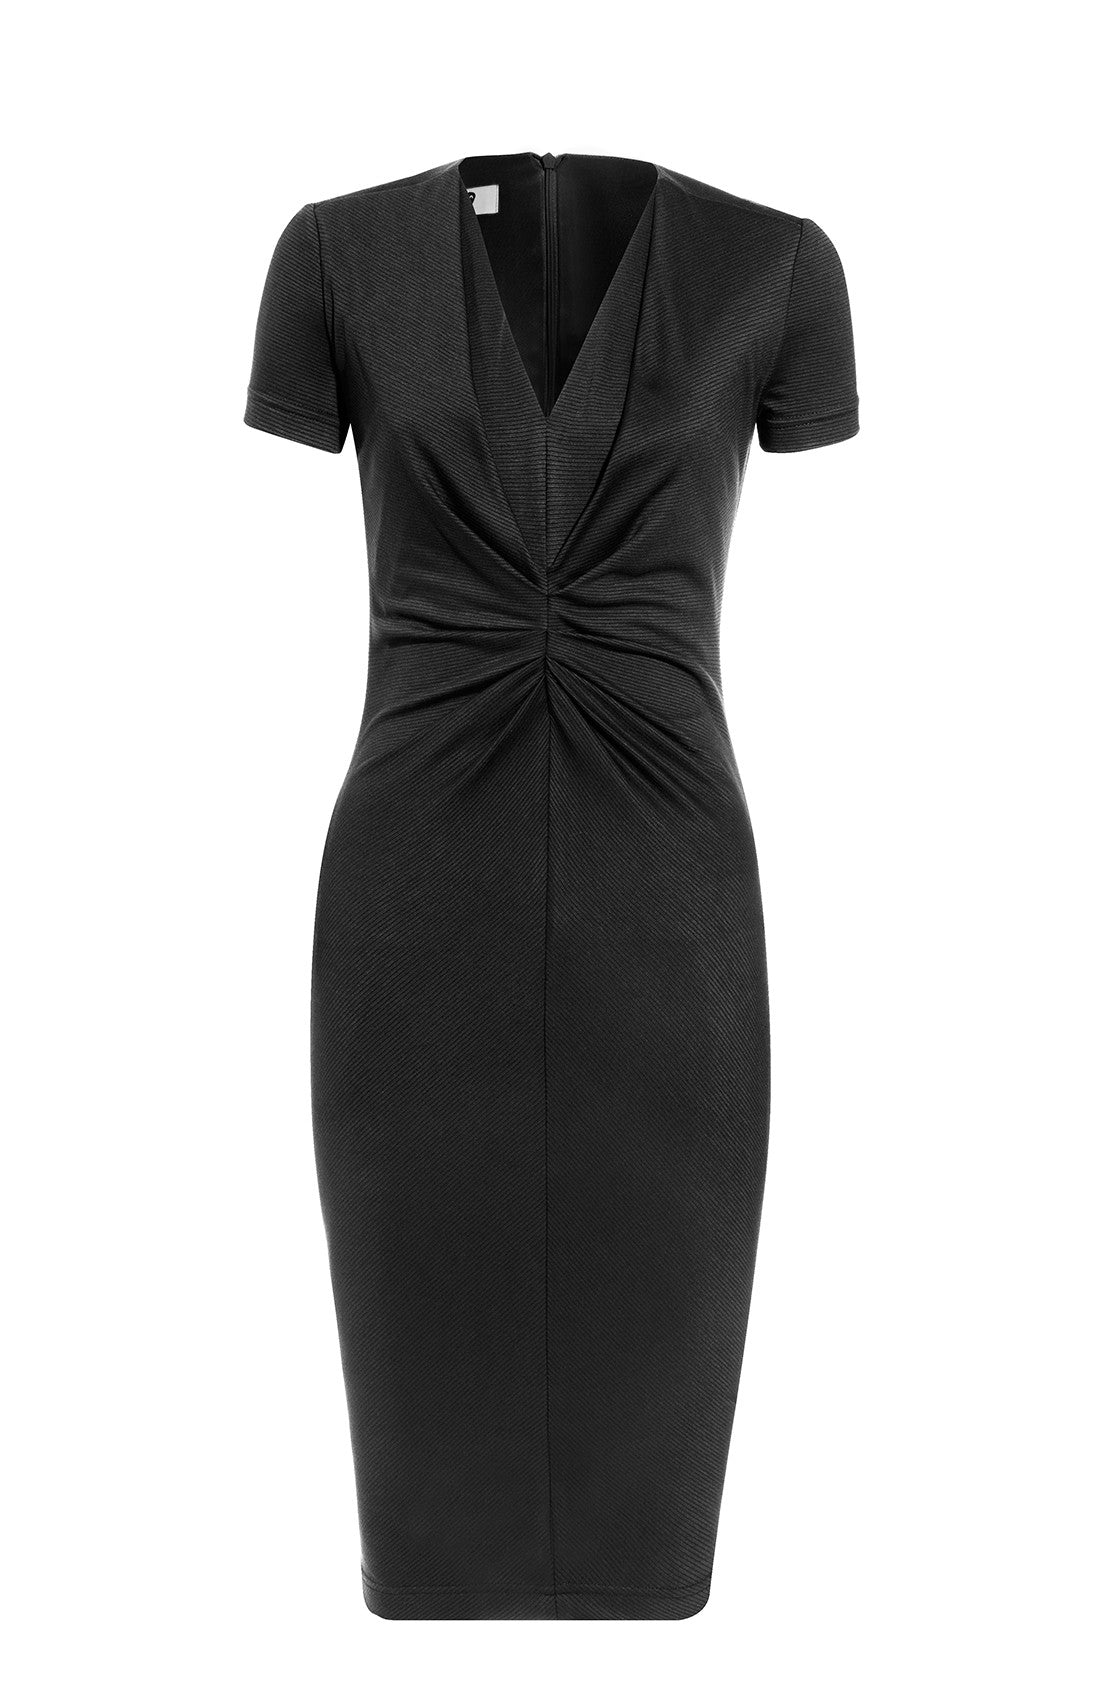 V-neck ruched and textured short sleeve jersey knee length office dress for work black